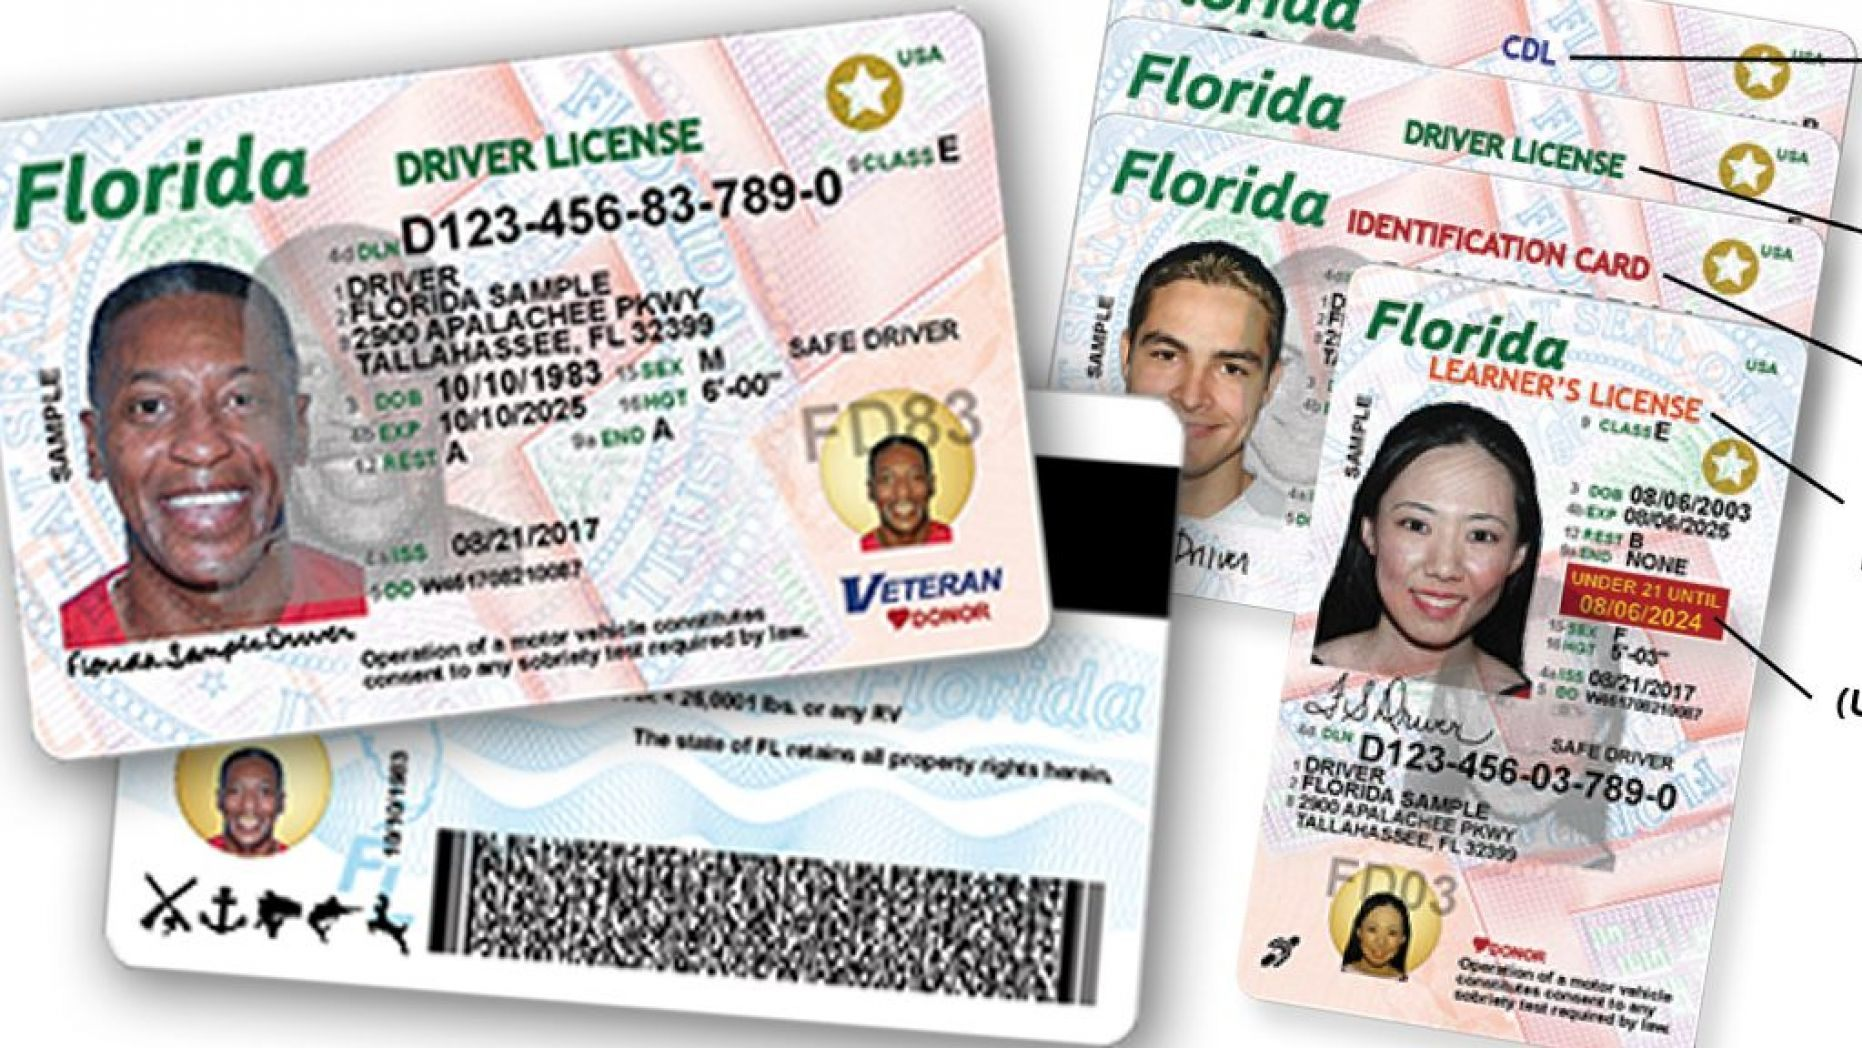 Getting A Florida Drivers License >> Have a gold star on your driver license? You'll need one to fly, starting next year